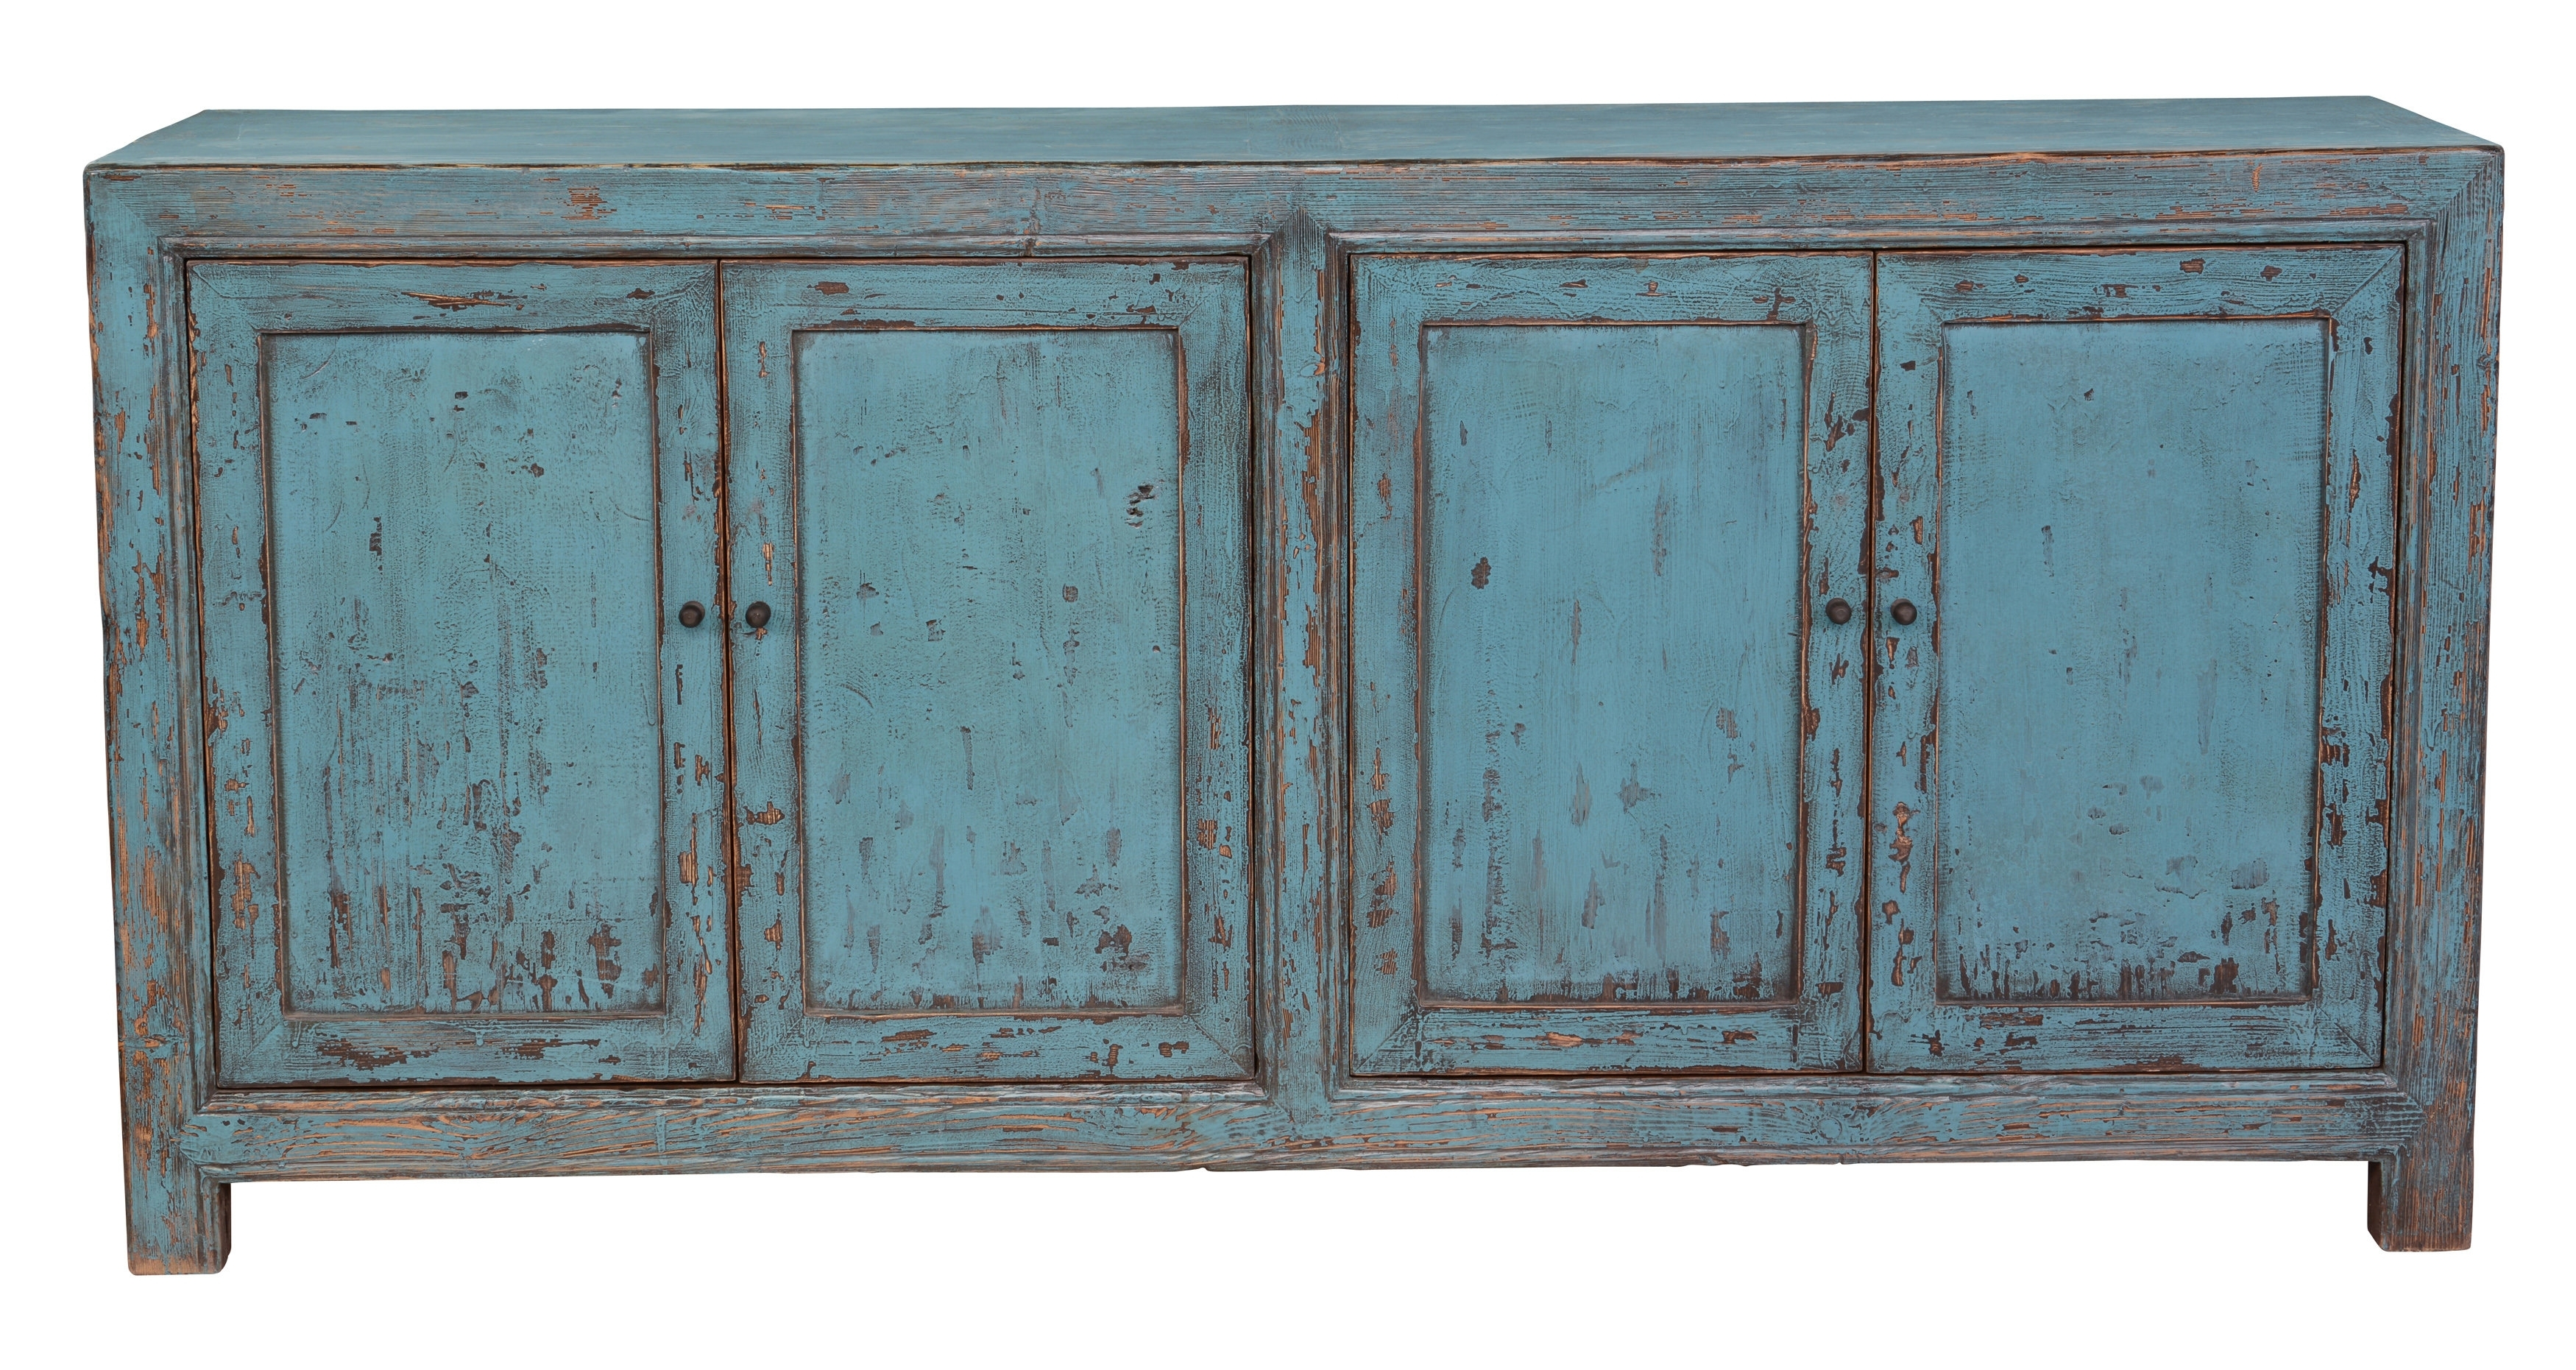 Tapscott Reclaimed Pine 4 Door Sideboard & Reviews | Allmodern intended for Reclaimed Sideboards With Metal Panel (Image 26 of 30)